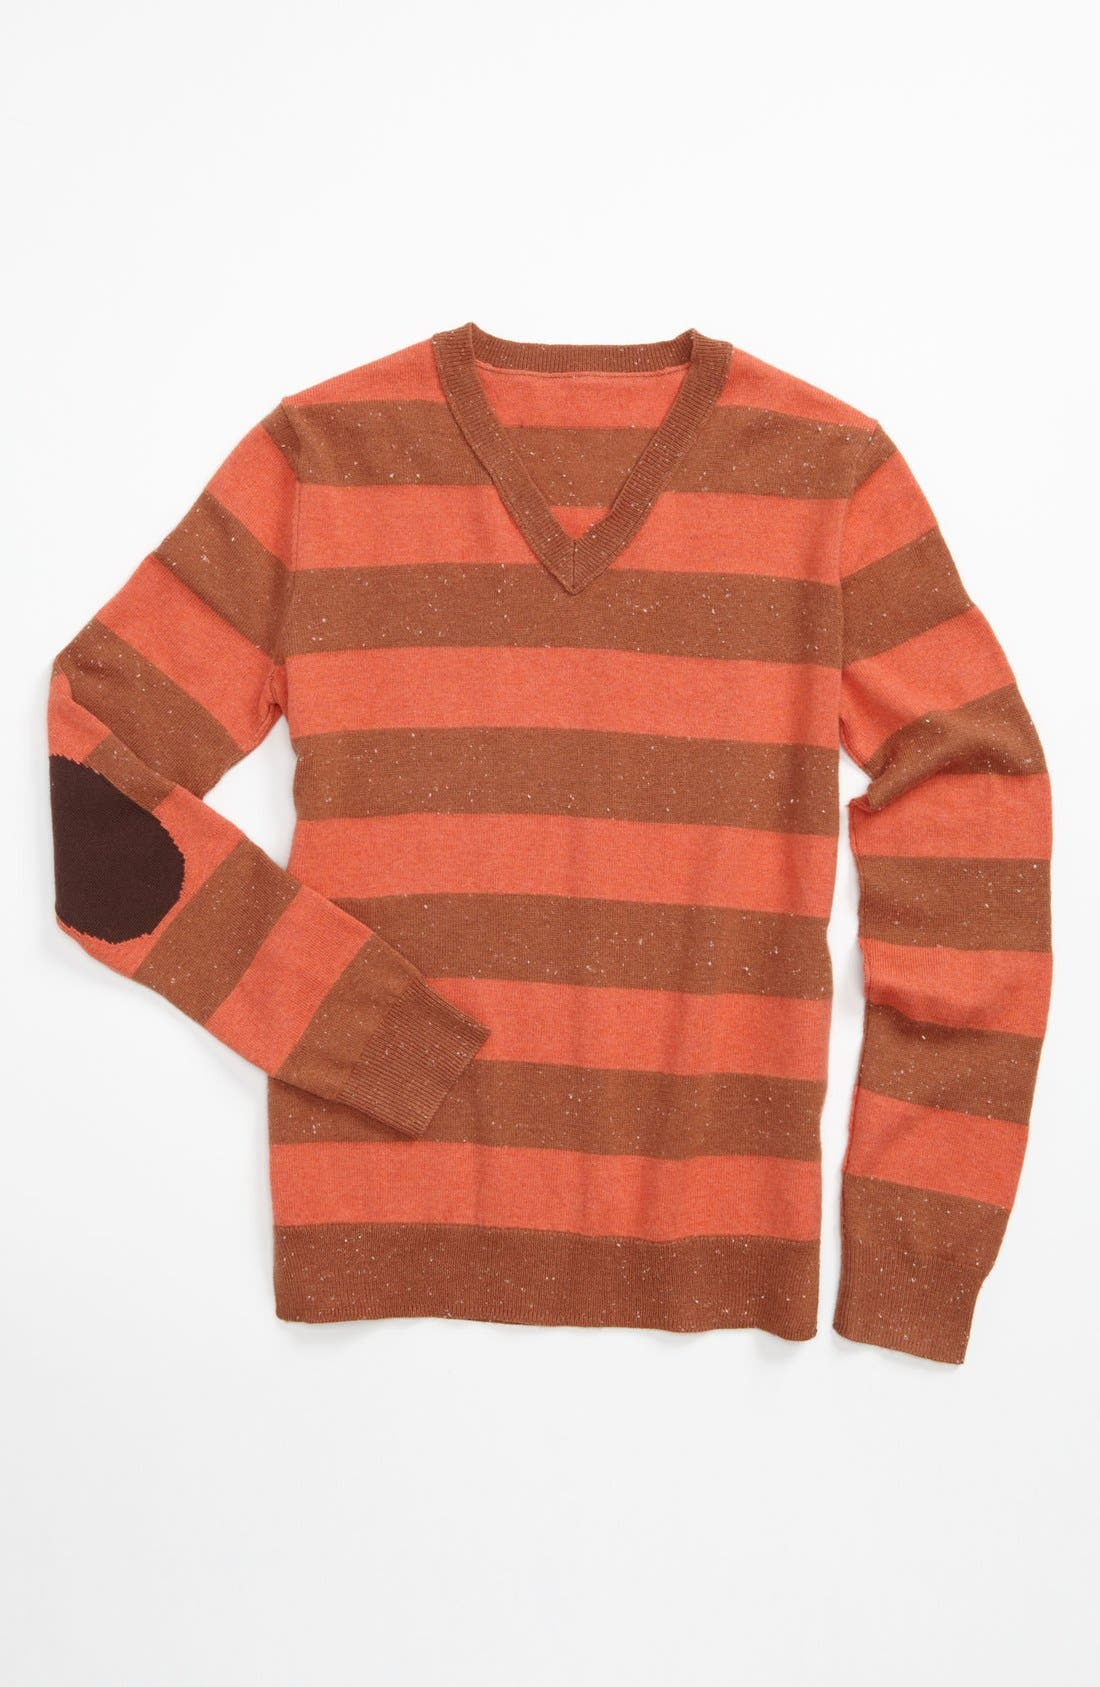 Alternate Image 1 Selected - Tucker + Tate 'Janie' Stripe Sweater (Big Girls)